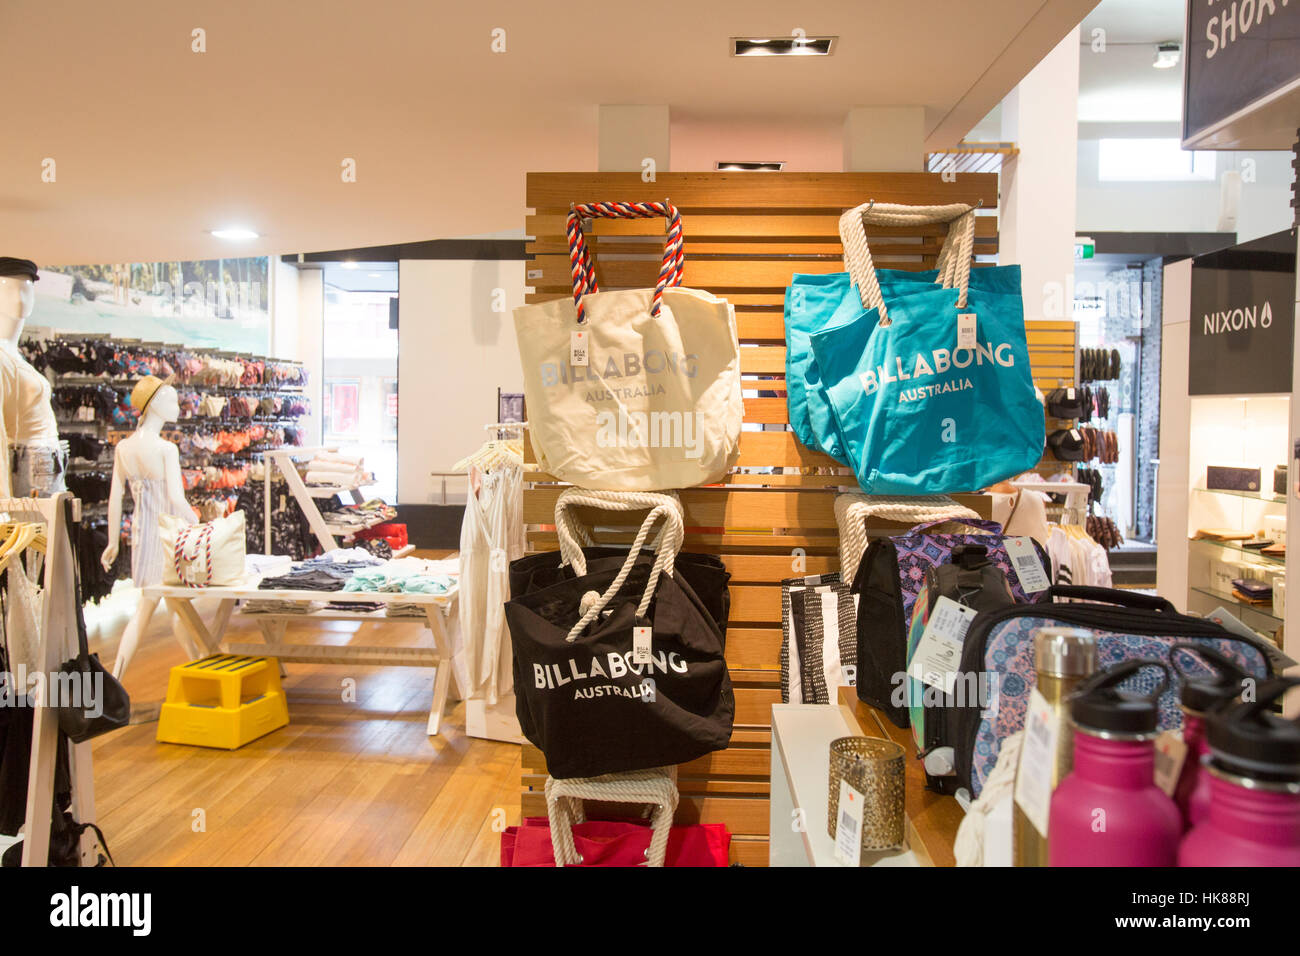 b1c0bd90e969 Billabong made beach bags and other surf clothing on sale inside Billabong  Surf wear Sydney store,New South Wales,Australia.